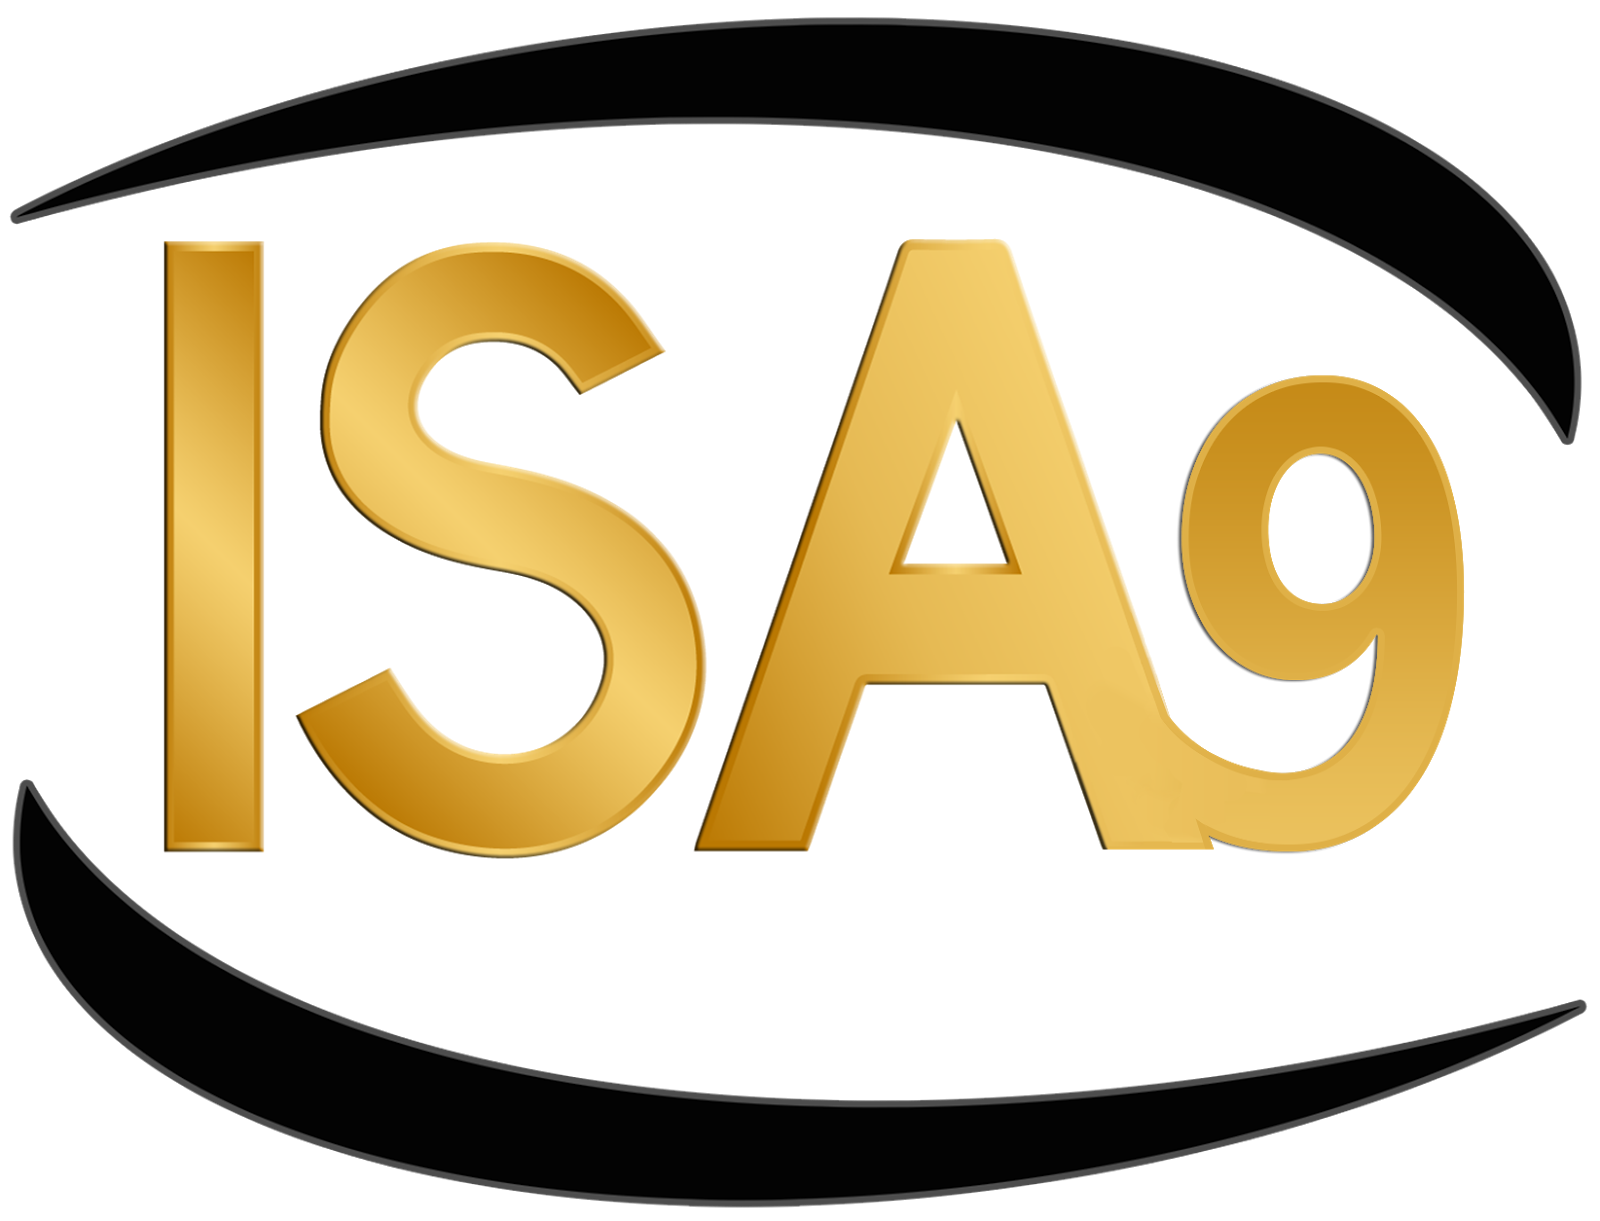 9th Annual ISAs Submissions Open on September 1